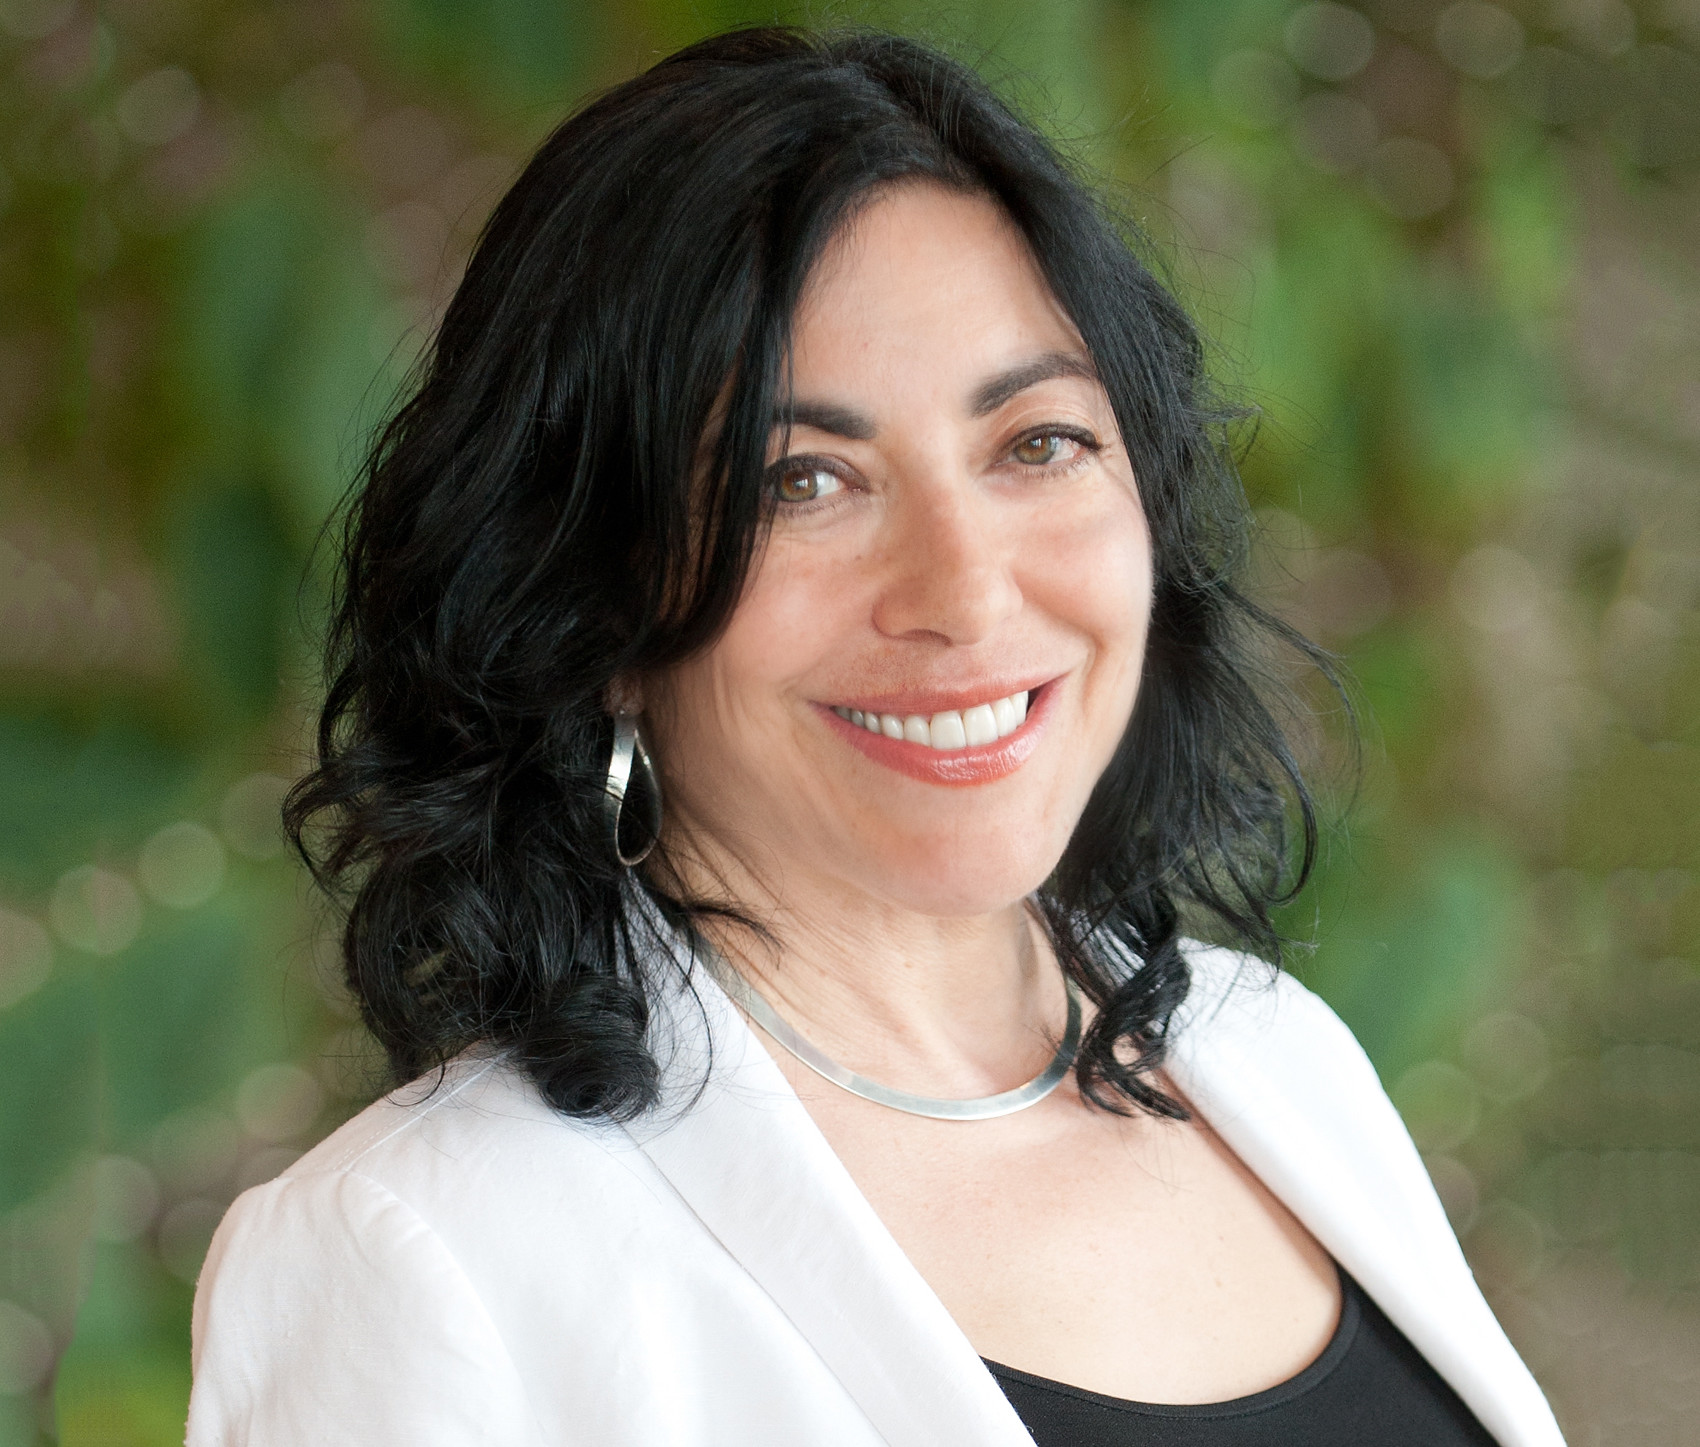 Microsoft Data Scientist Jennifer Chayes '78 Elected to National Academy of Sciences